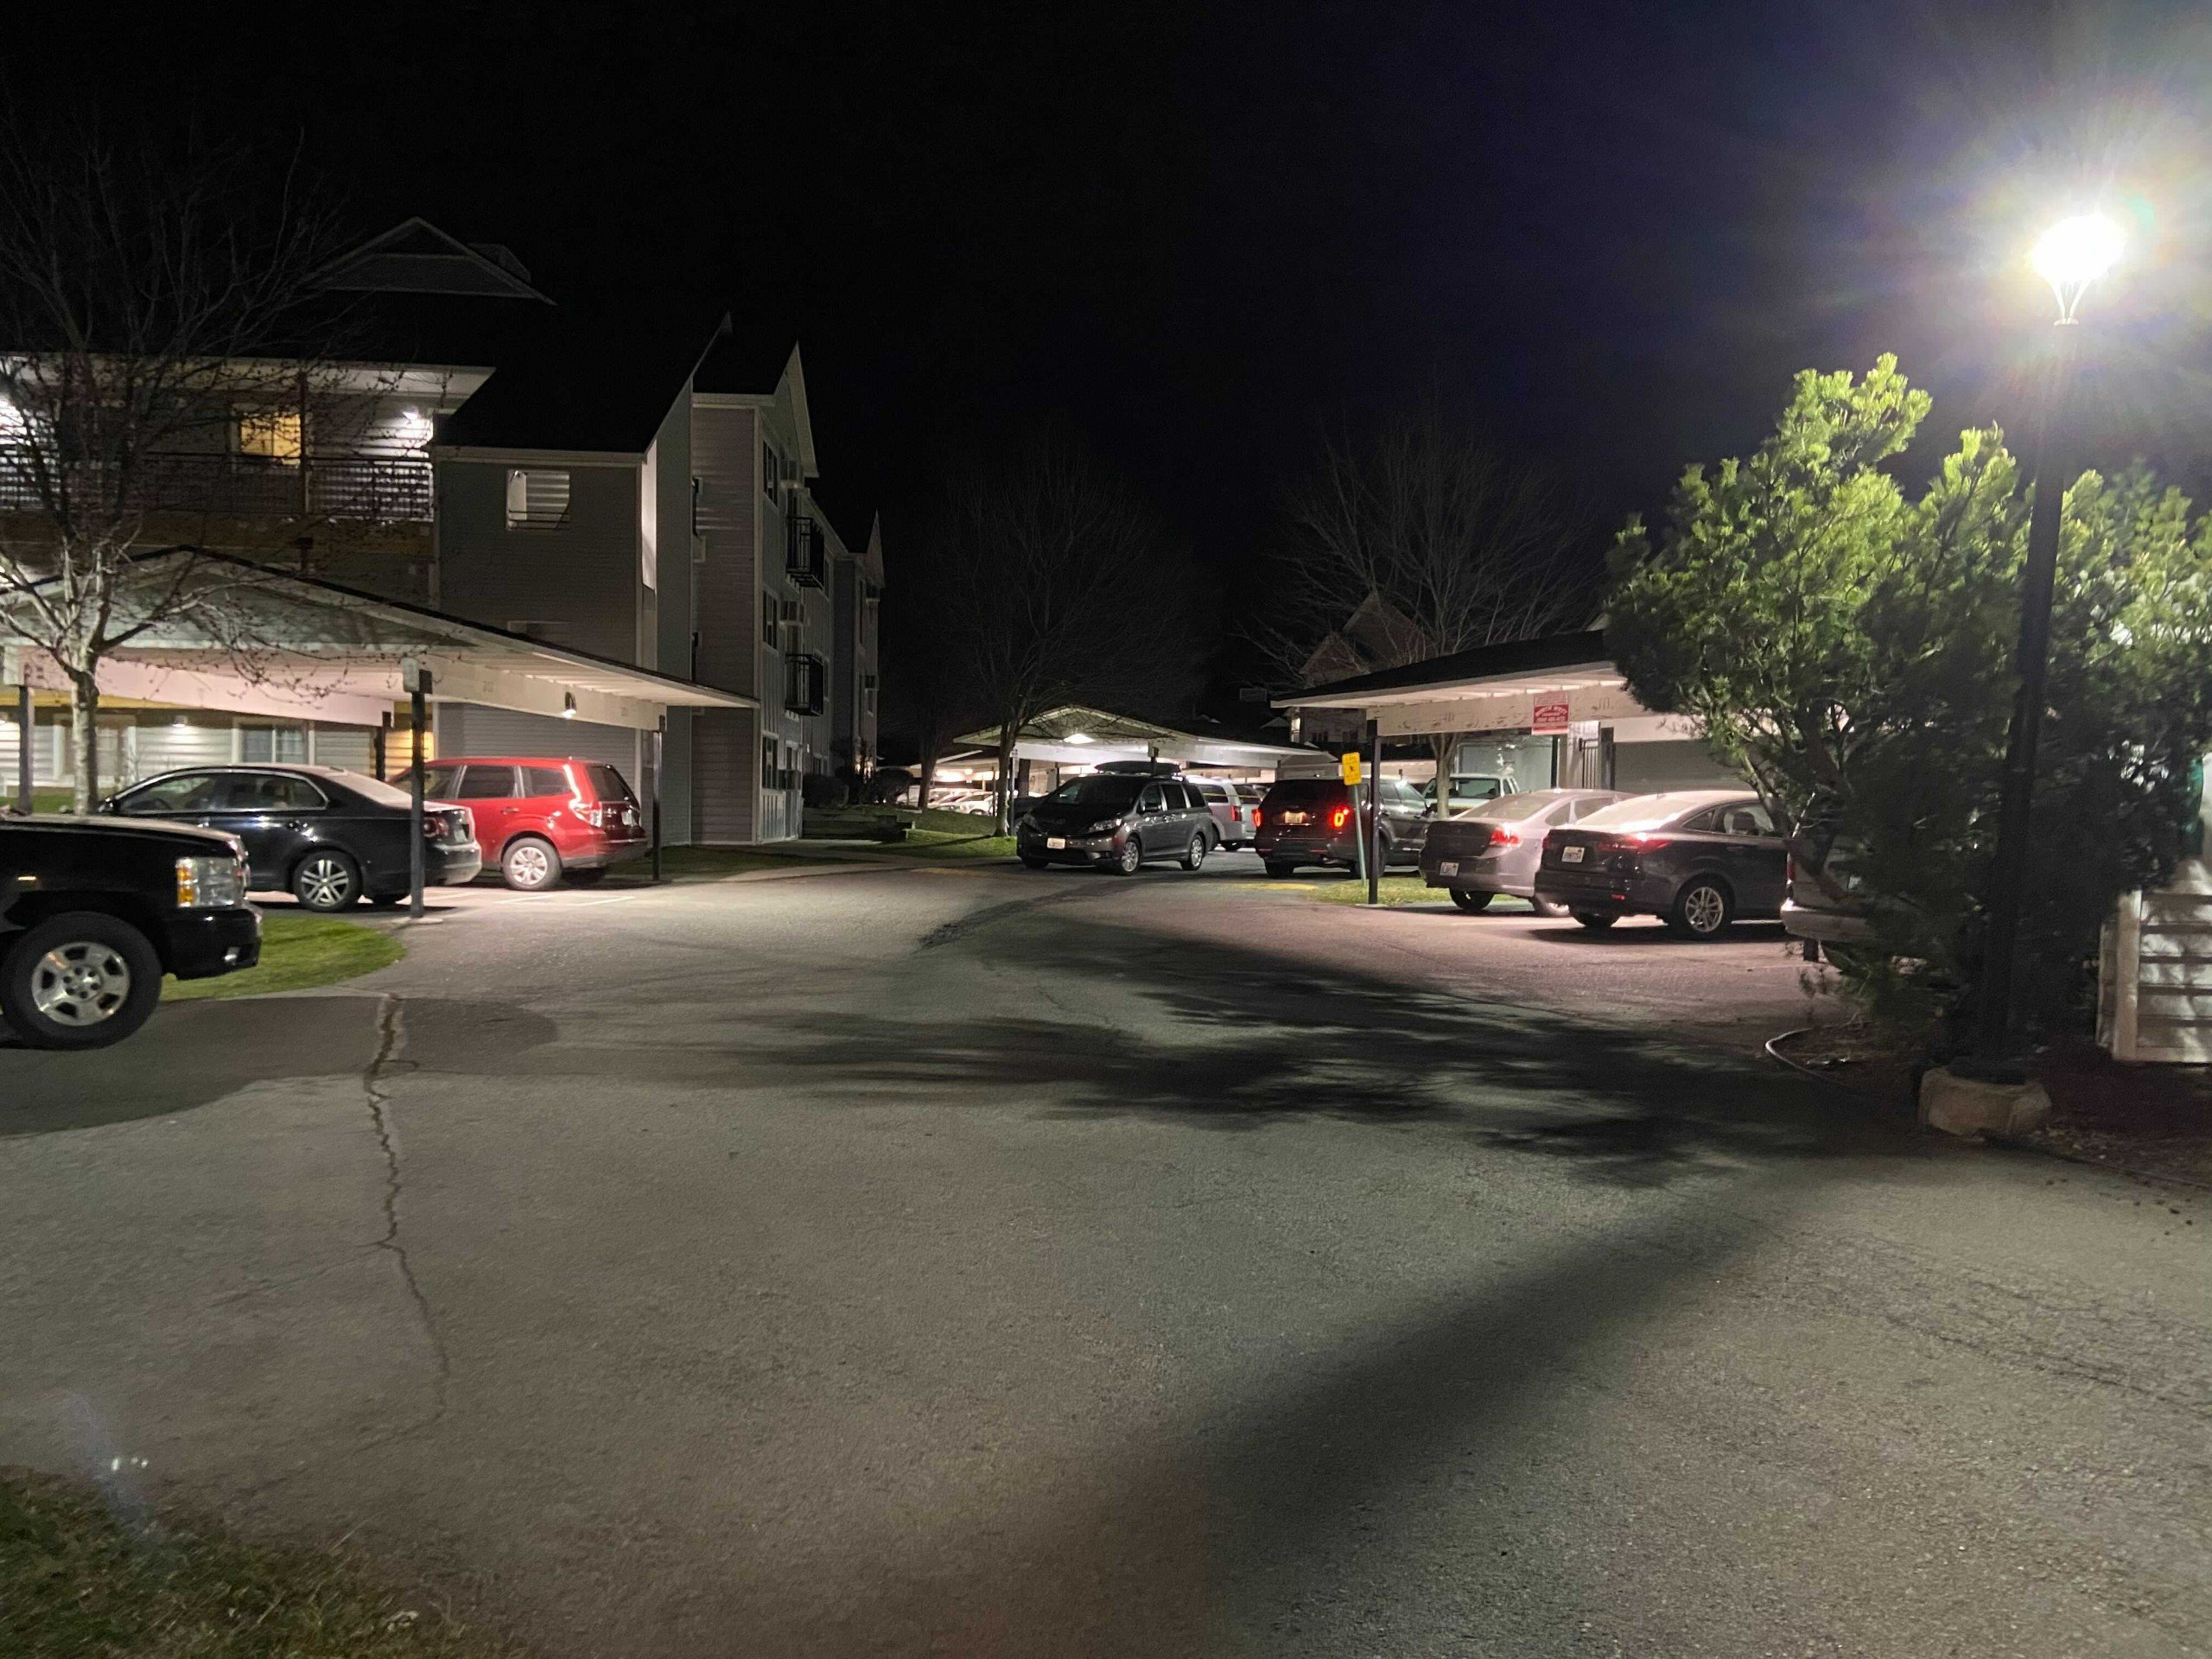 Teenage Boy Killed In Shooting At Village Apartments In Spokane Valley Kxly